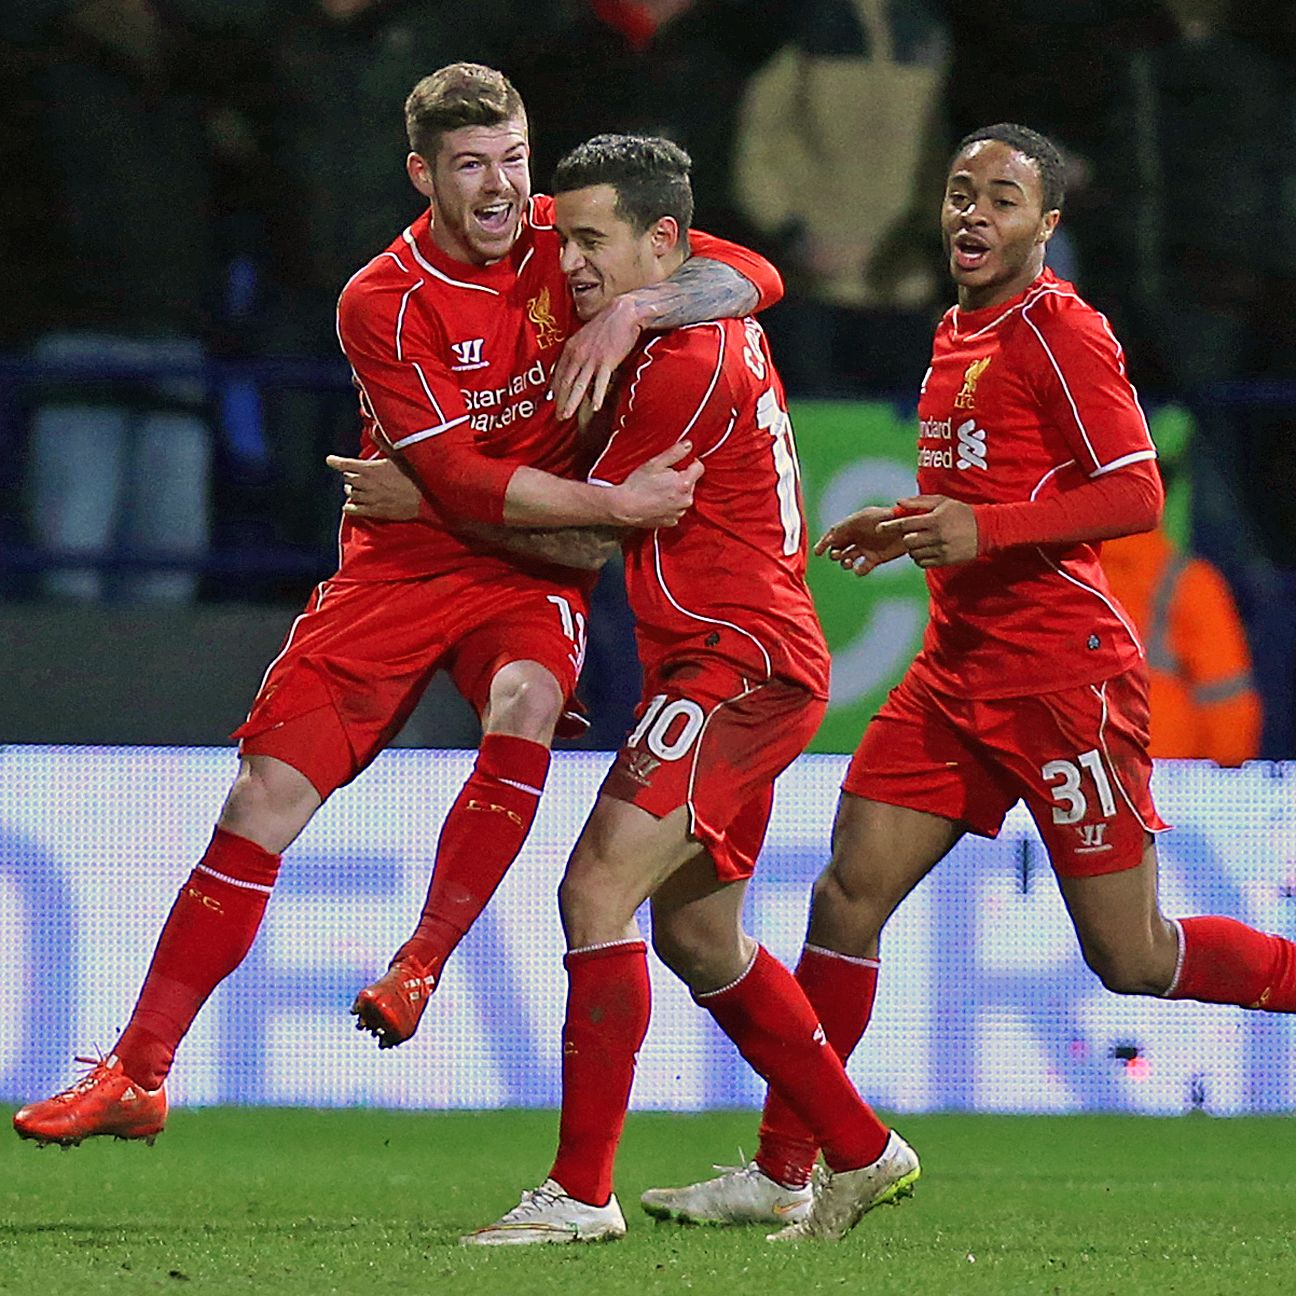 Are Liverpool a good value bet as heavy favorites versus Newcastle?